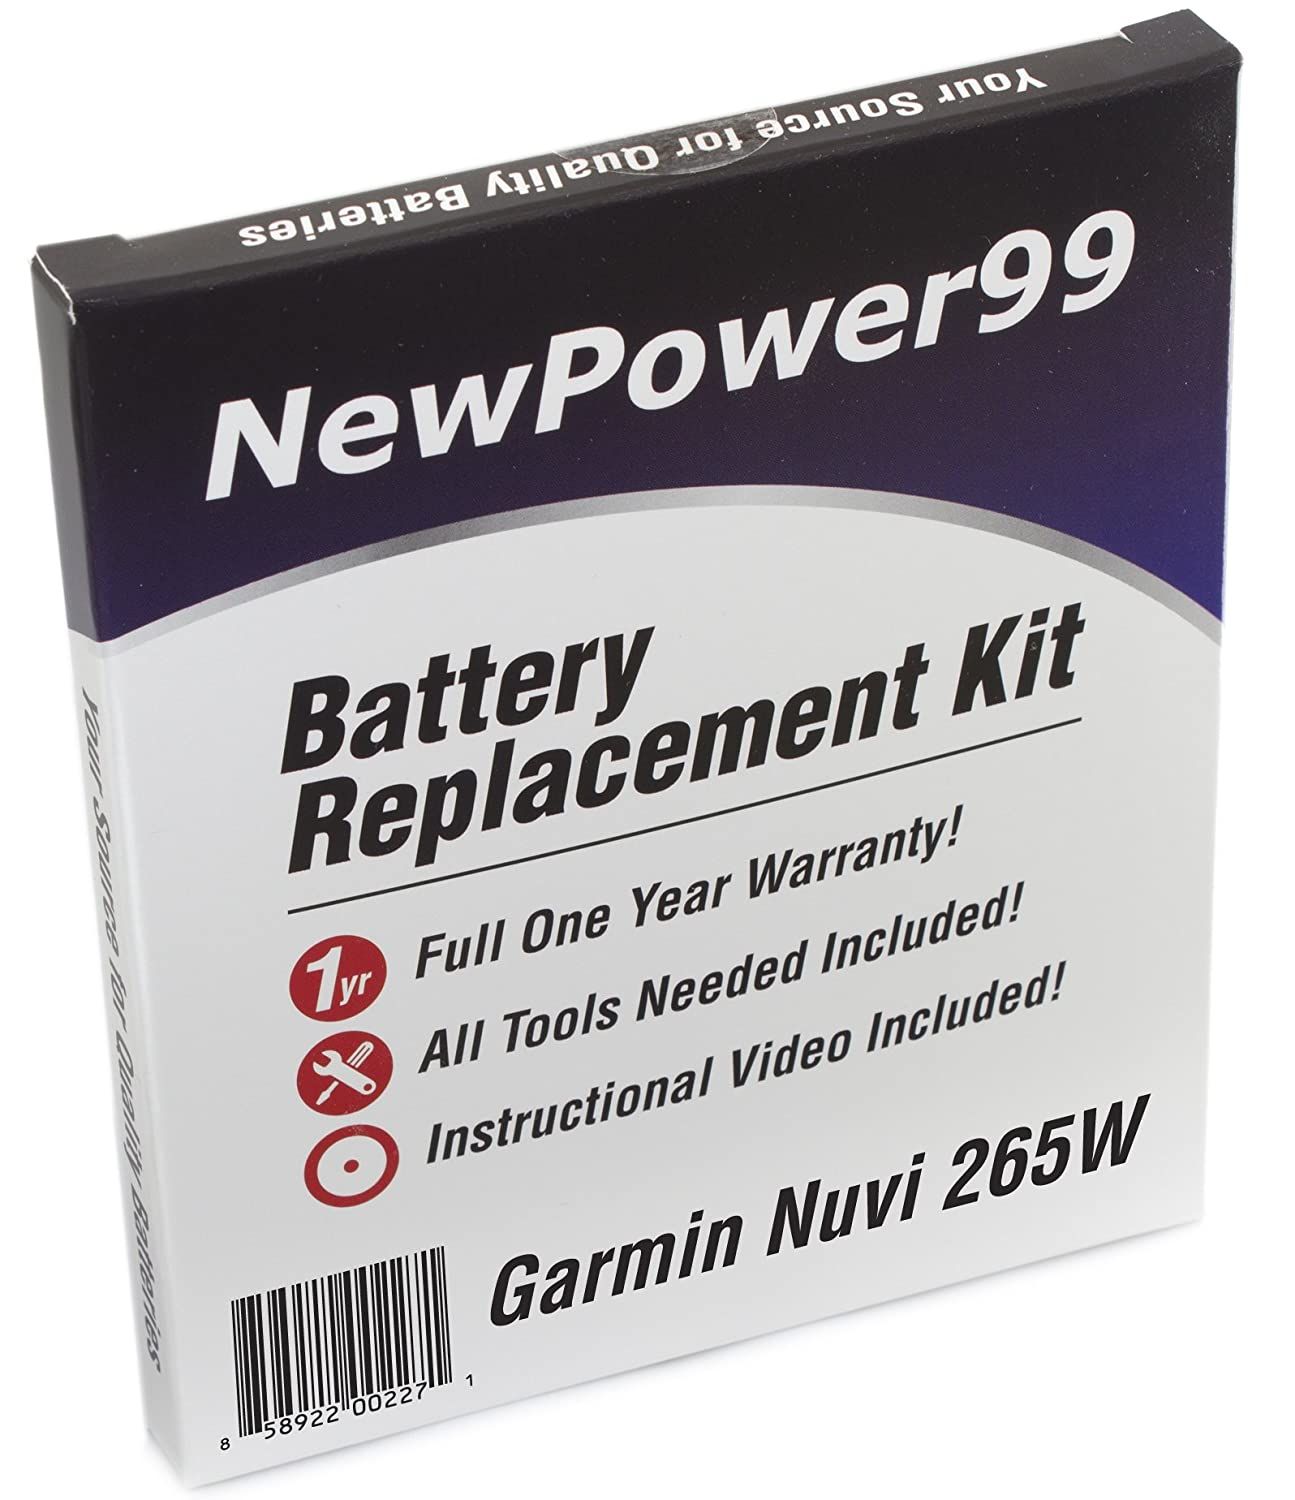 Battery Replacement Kit for Garmin Nuvi 265W with Installation Video, Tools, and Extended Life Battery. NewPower99